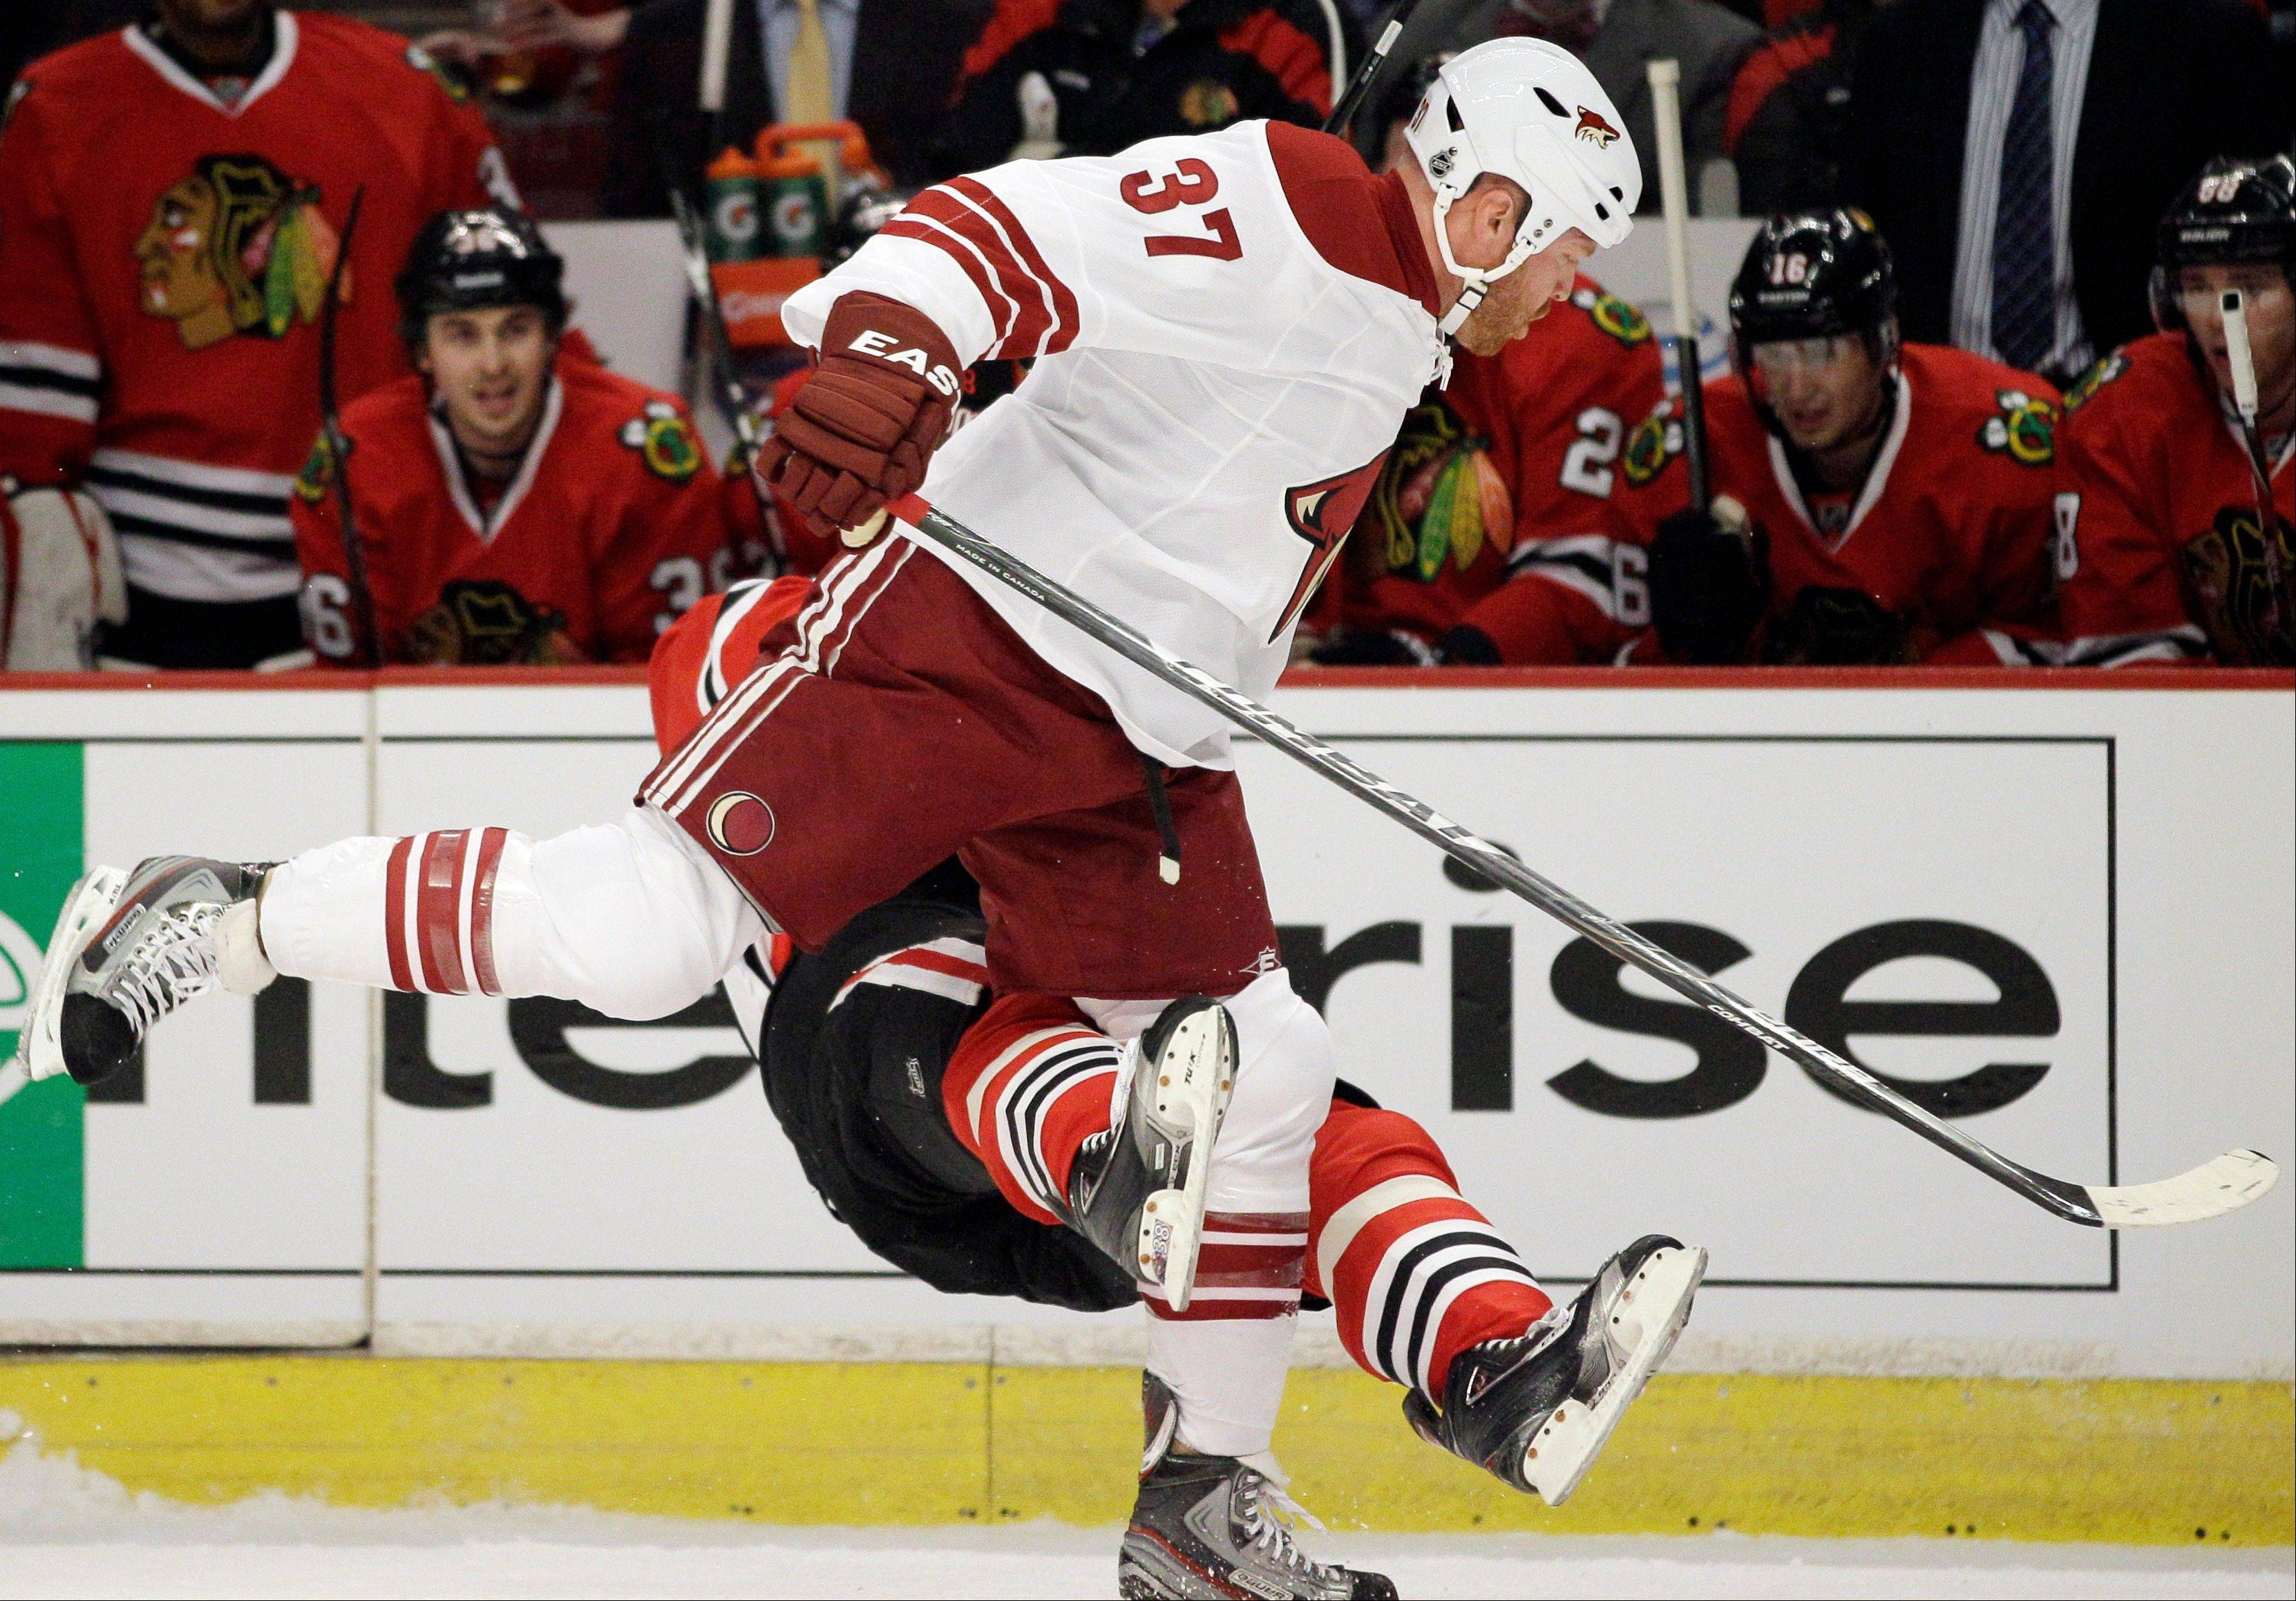 Toews on Torres' hit: That's not hockey to me